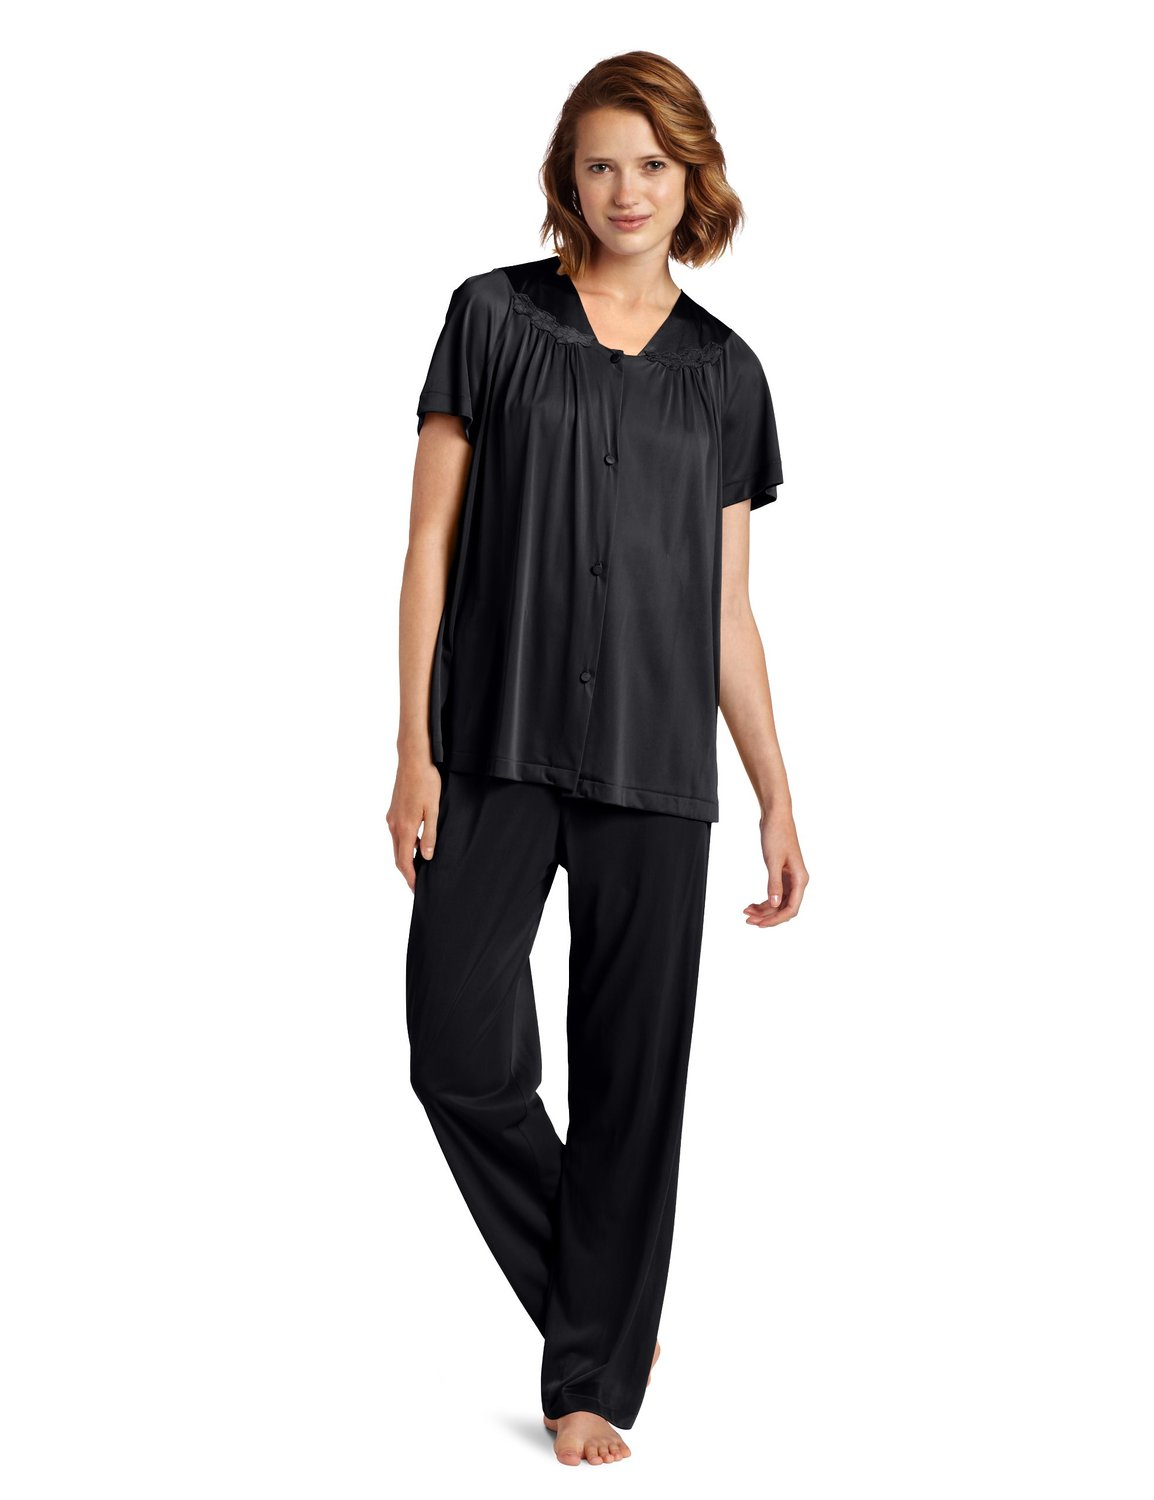 Vanity Fair Colortura Sleepwear Women`s Plus-Sizes Short-Sleeve Pajama Set